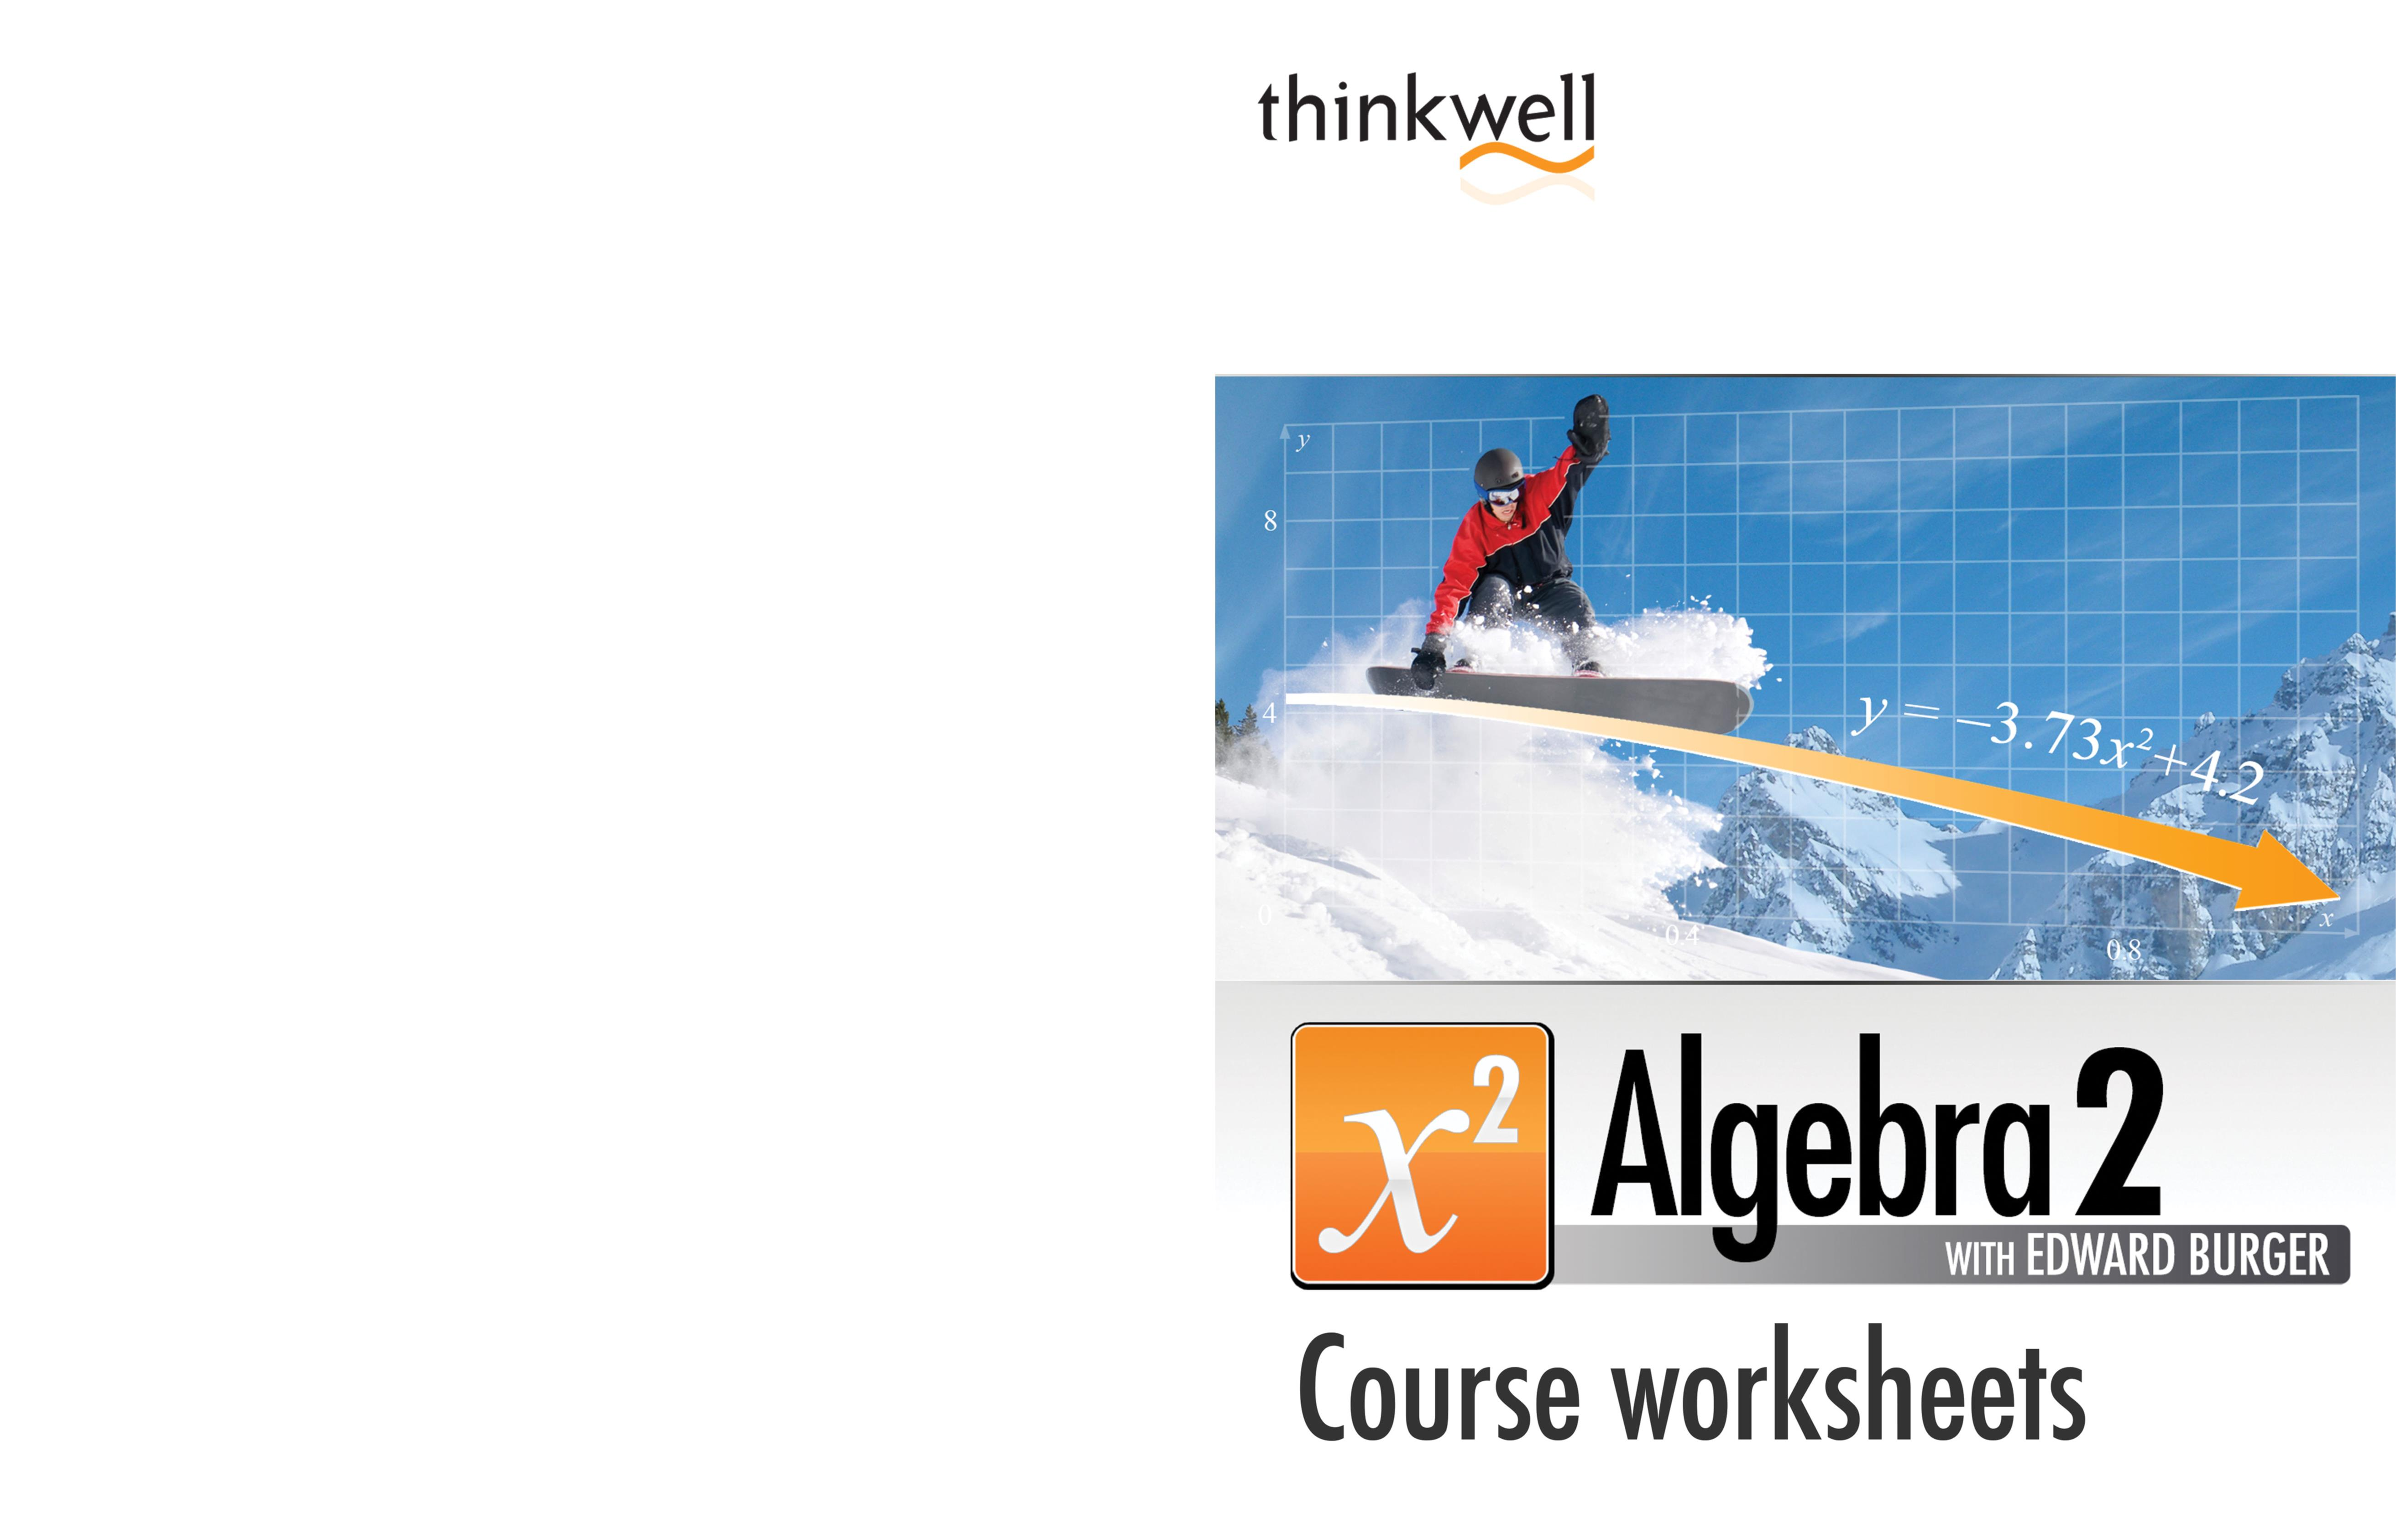 Worksheet Algebra 2 Worksheets With Answer Key thinkwell algebra 2 worksheets and answer keys by corp cover image